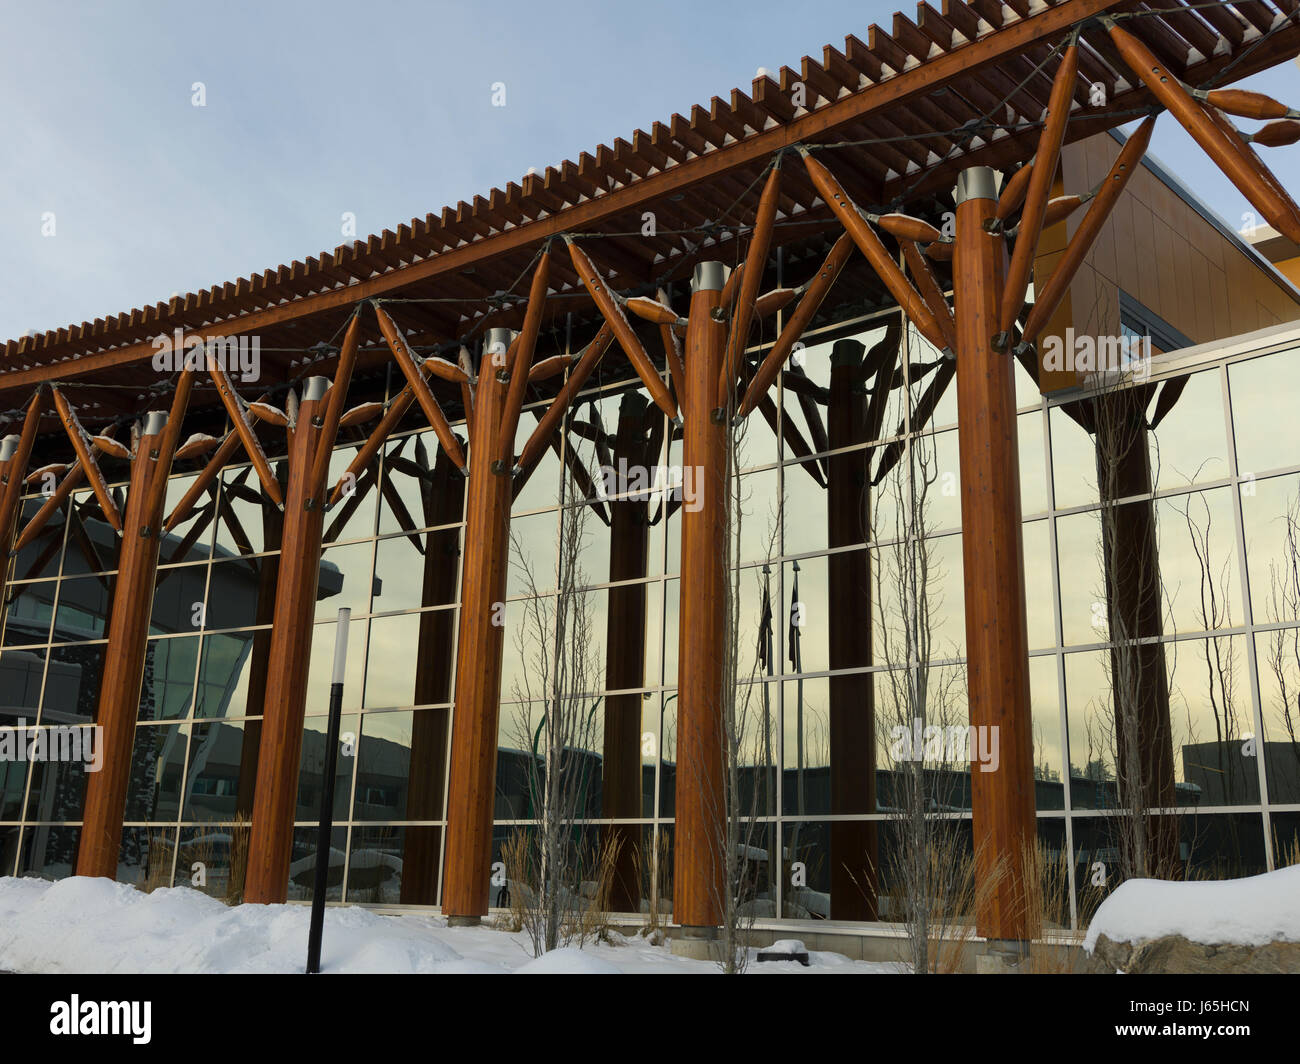 Building of Royal Canadian Mounted Police, Prince George, British Columbia, Canada - Stock Image